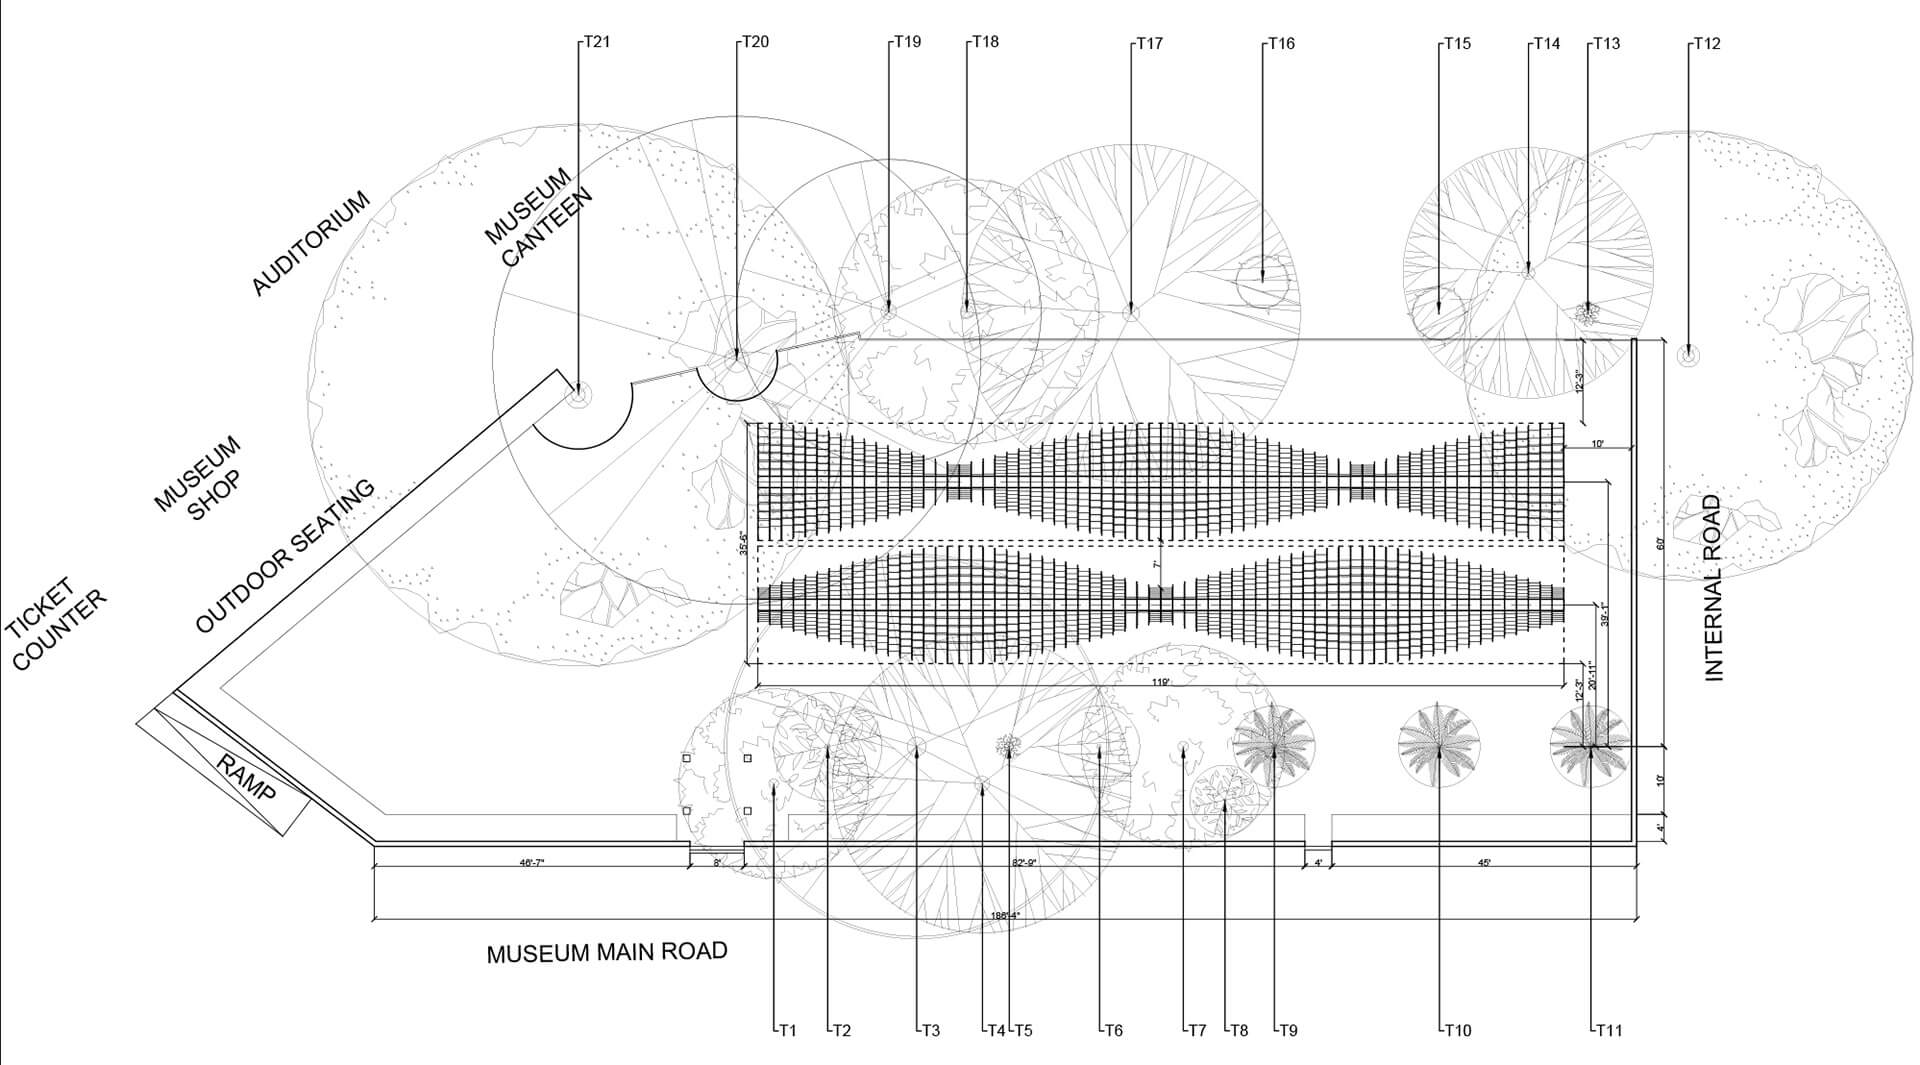 Plan of the Bookworm pavilion showing its placement in the landscape of the museum |Bookworm Pavilion| Nudes| Nuru Karim | STIRworld